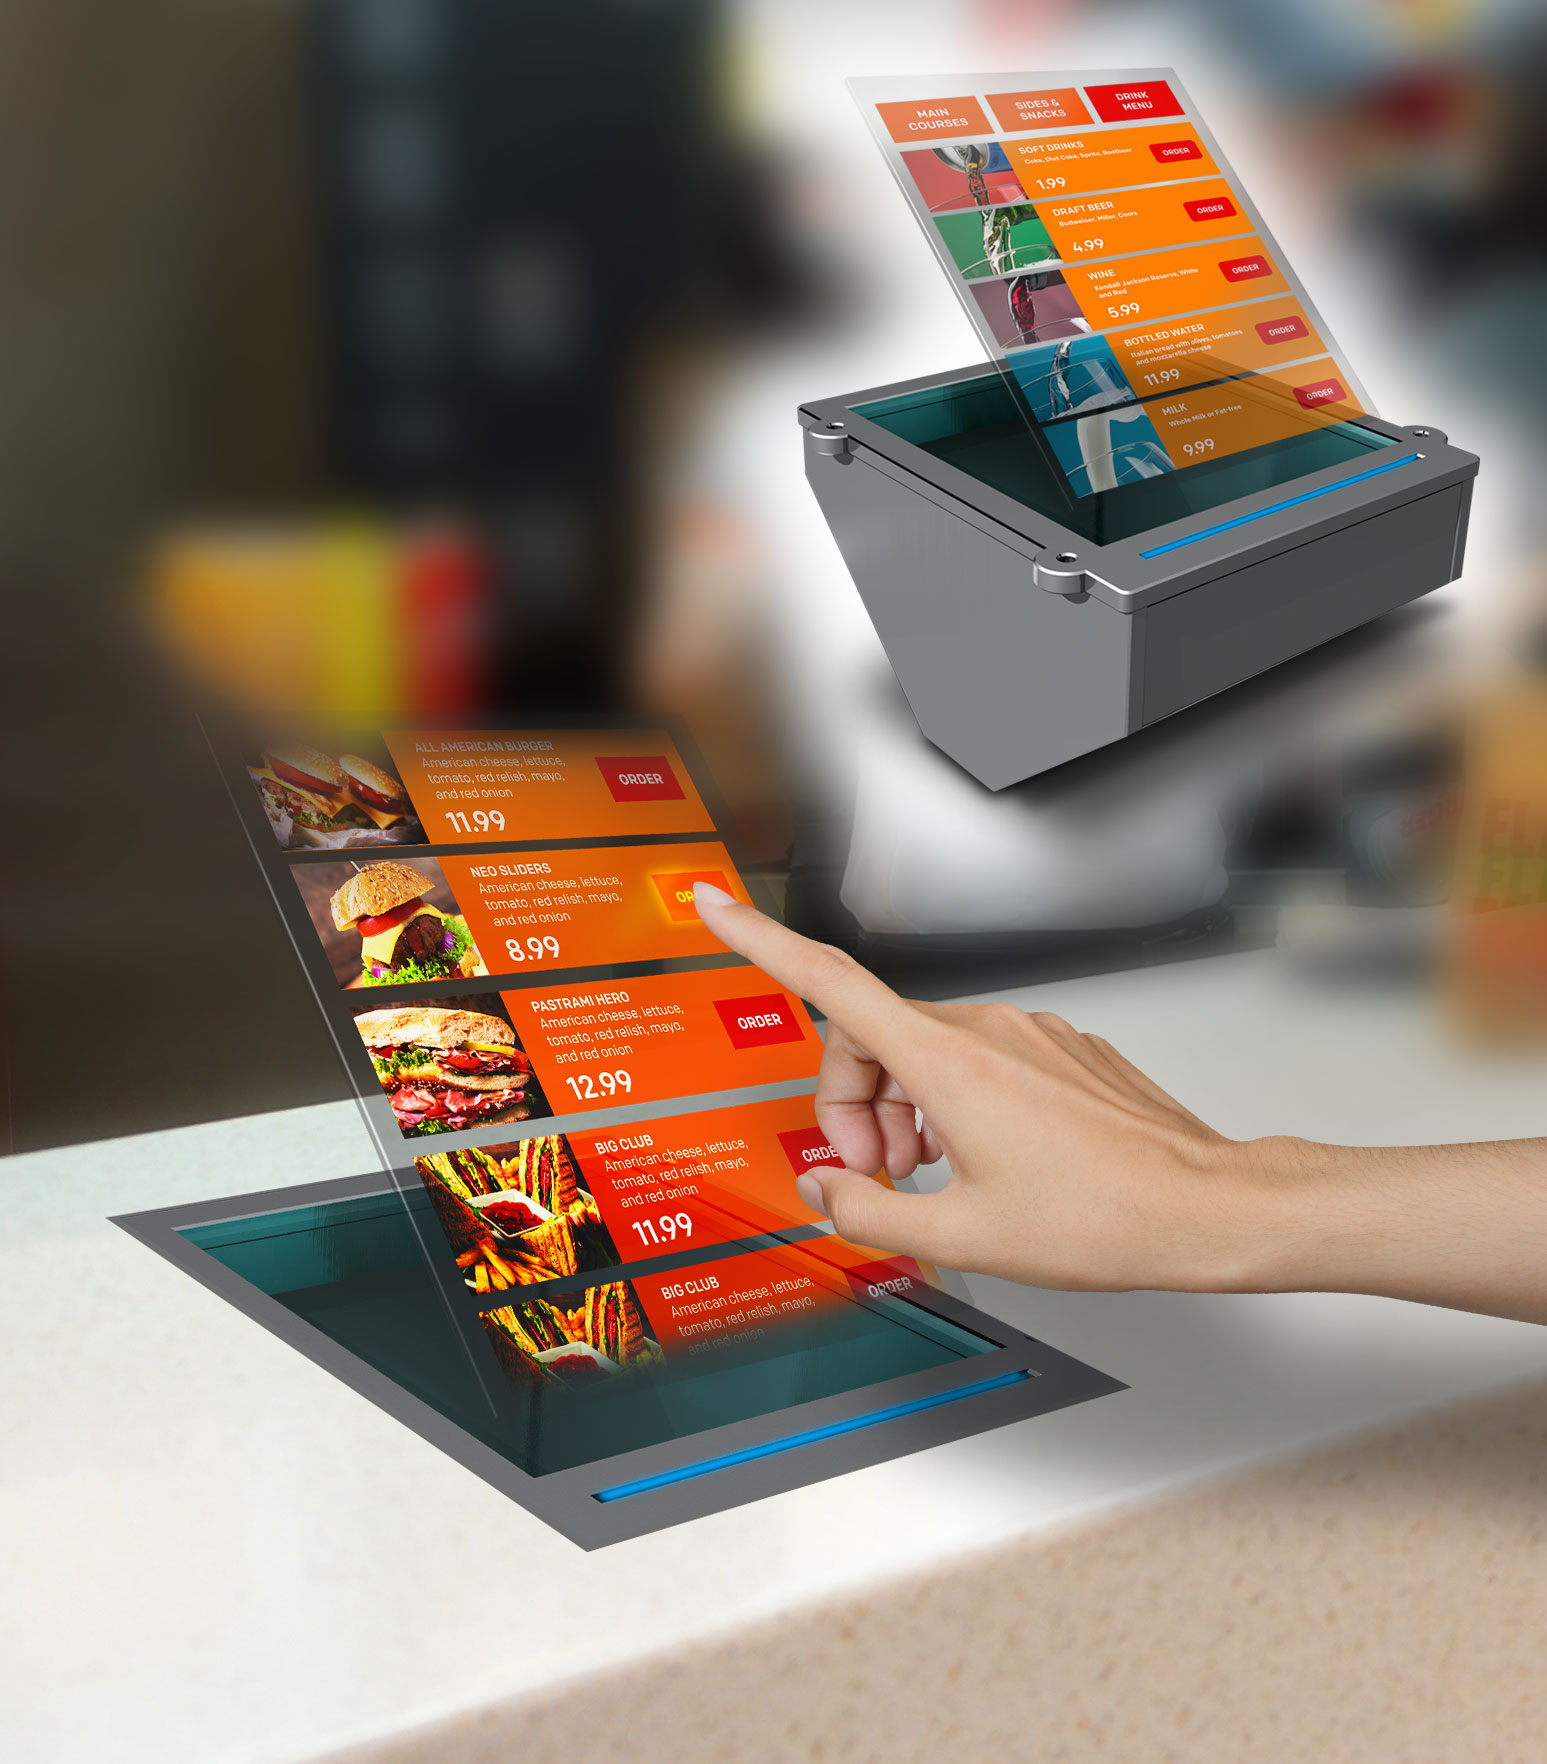 Contactless-Touch Holo Products for Germ-free Interaction